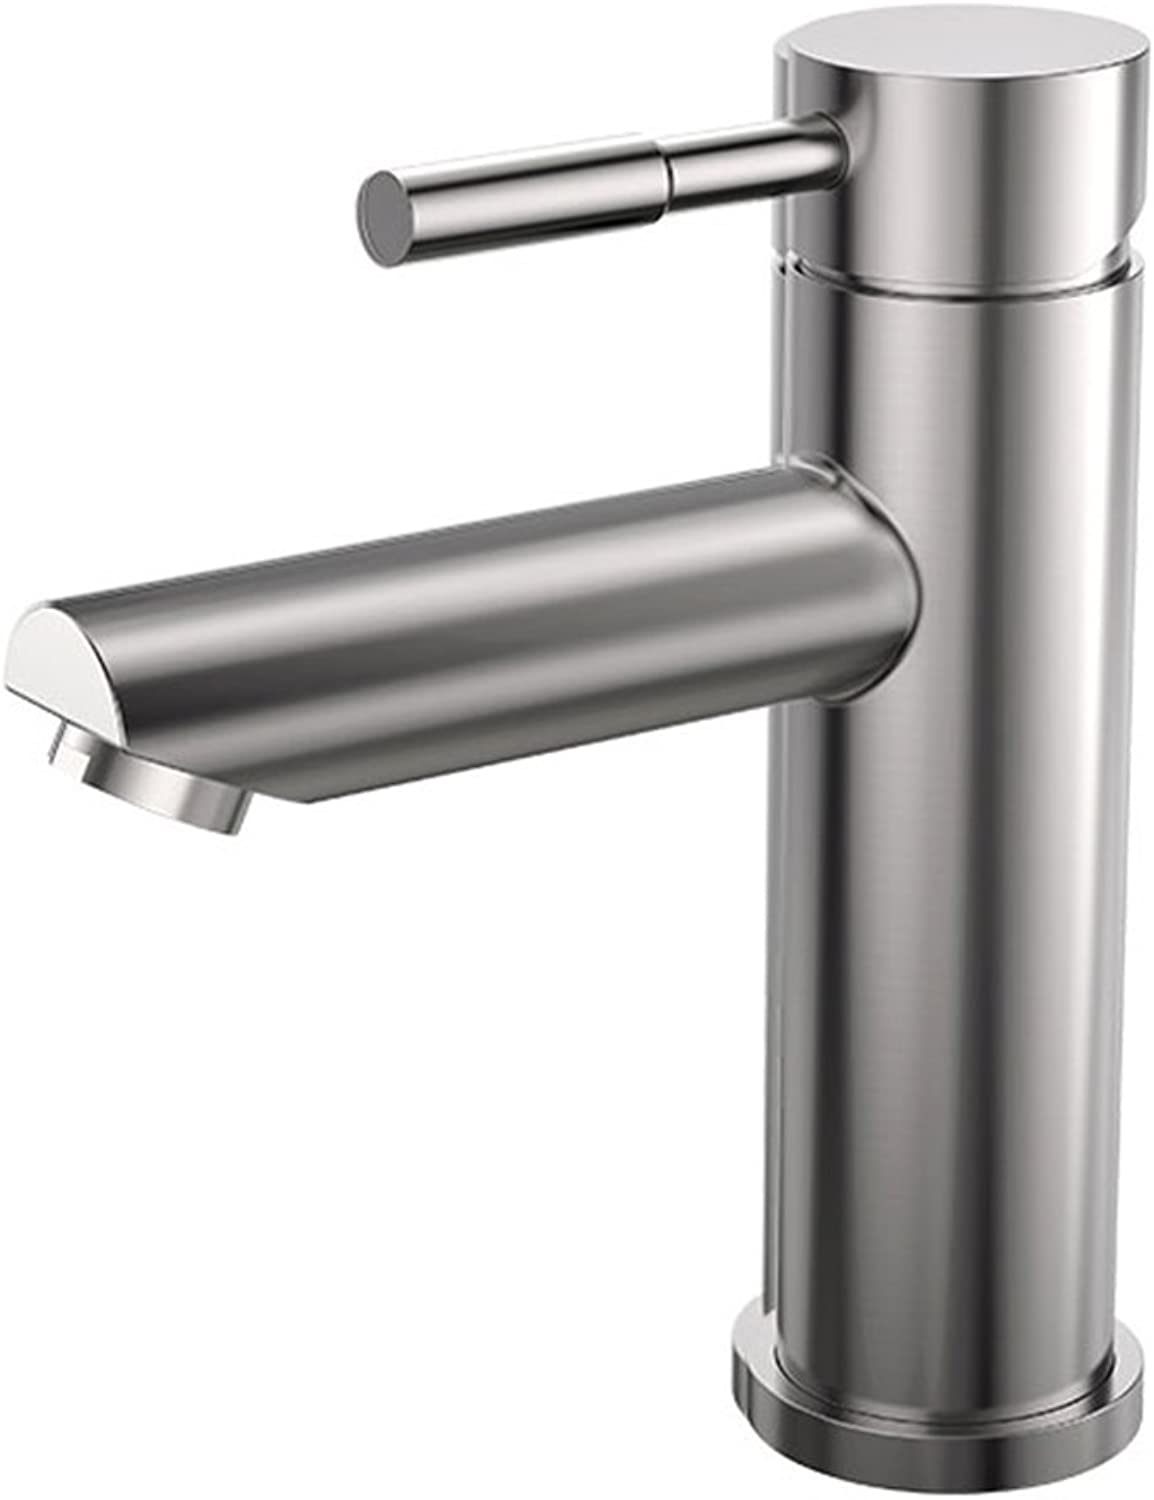 North cool Single Lever Stainless Steel Basin Faucet Hot And Cold Water Basin Faucet Kitchen Bathroom Sink On The Basin